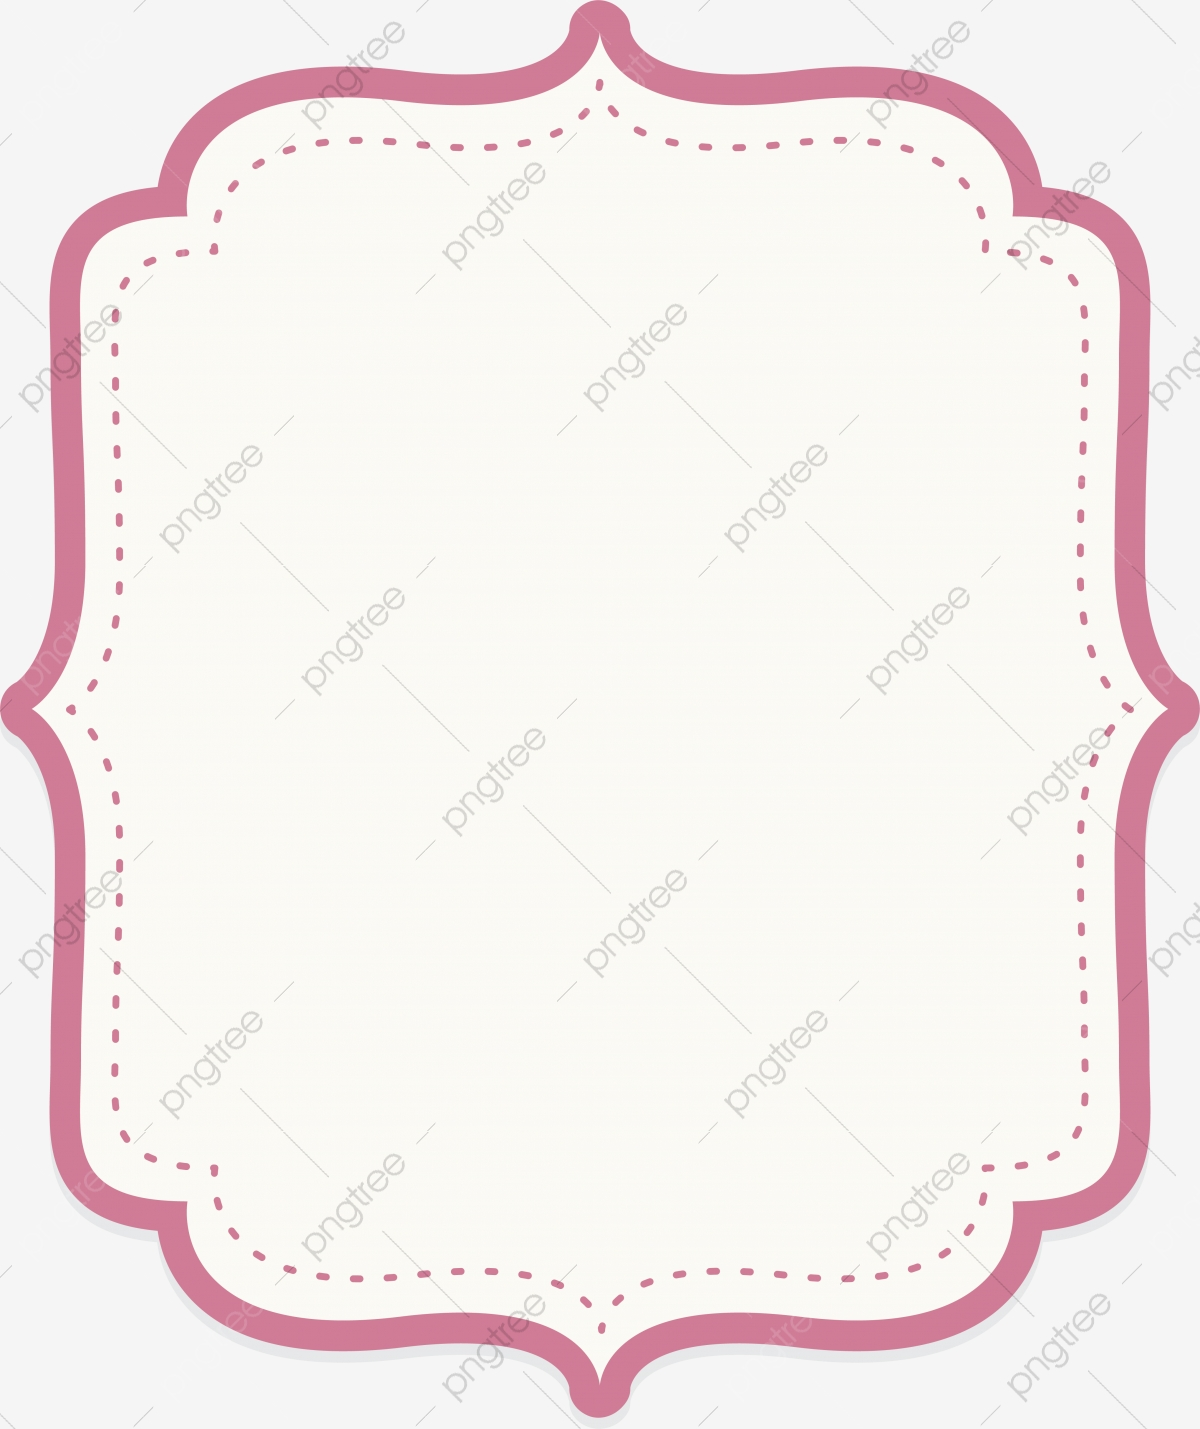 Pink Text Border, Border, Border, Border PNG and Vector with.